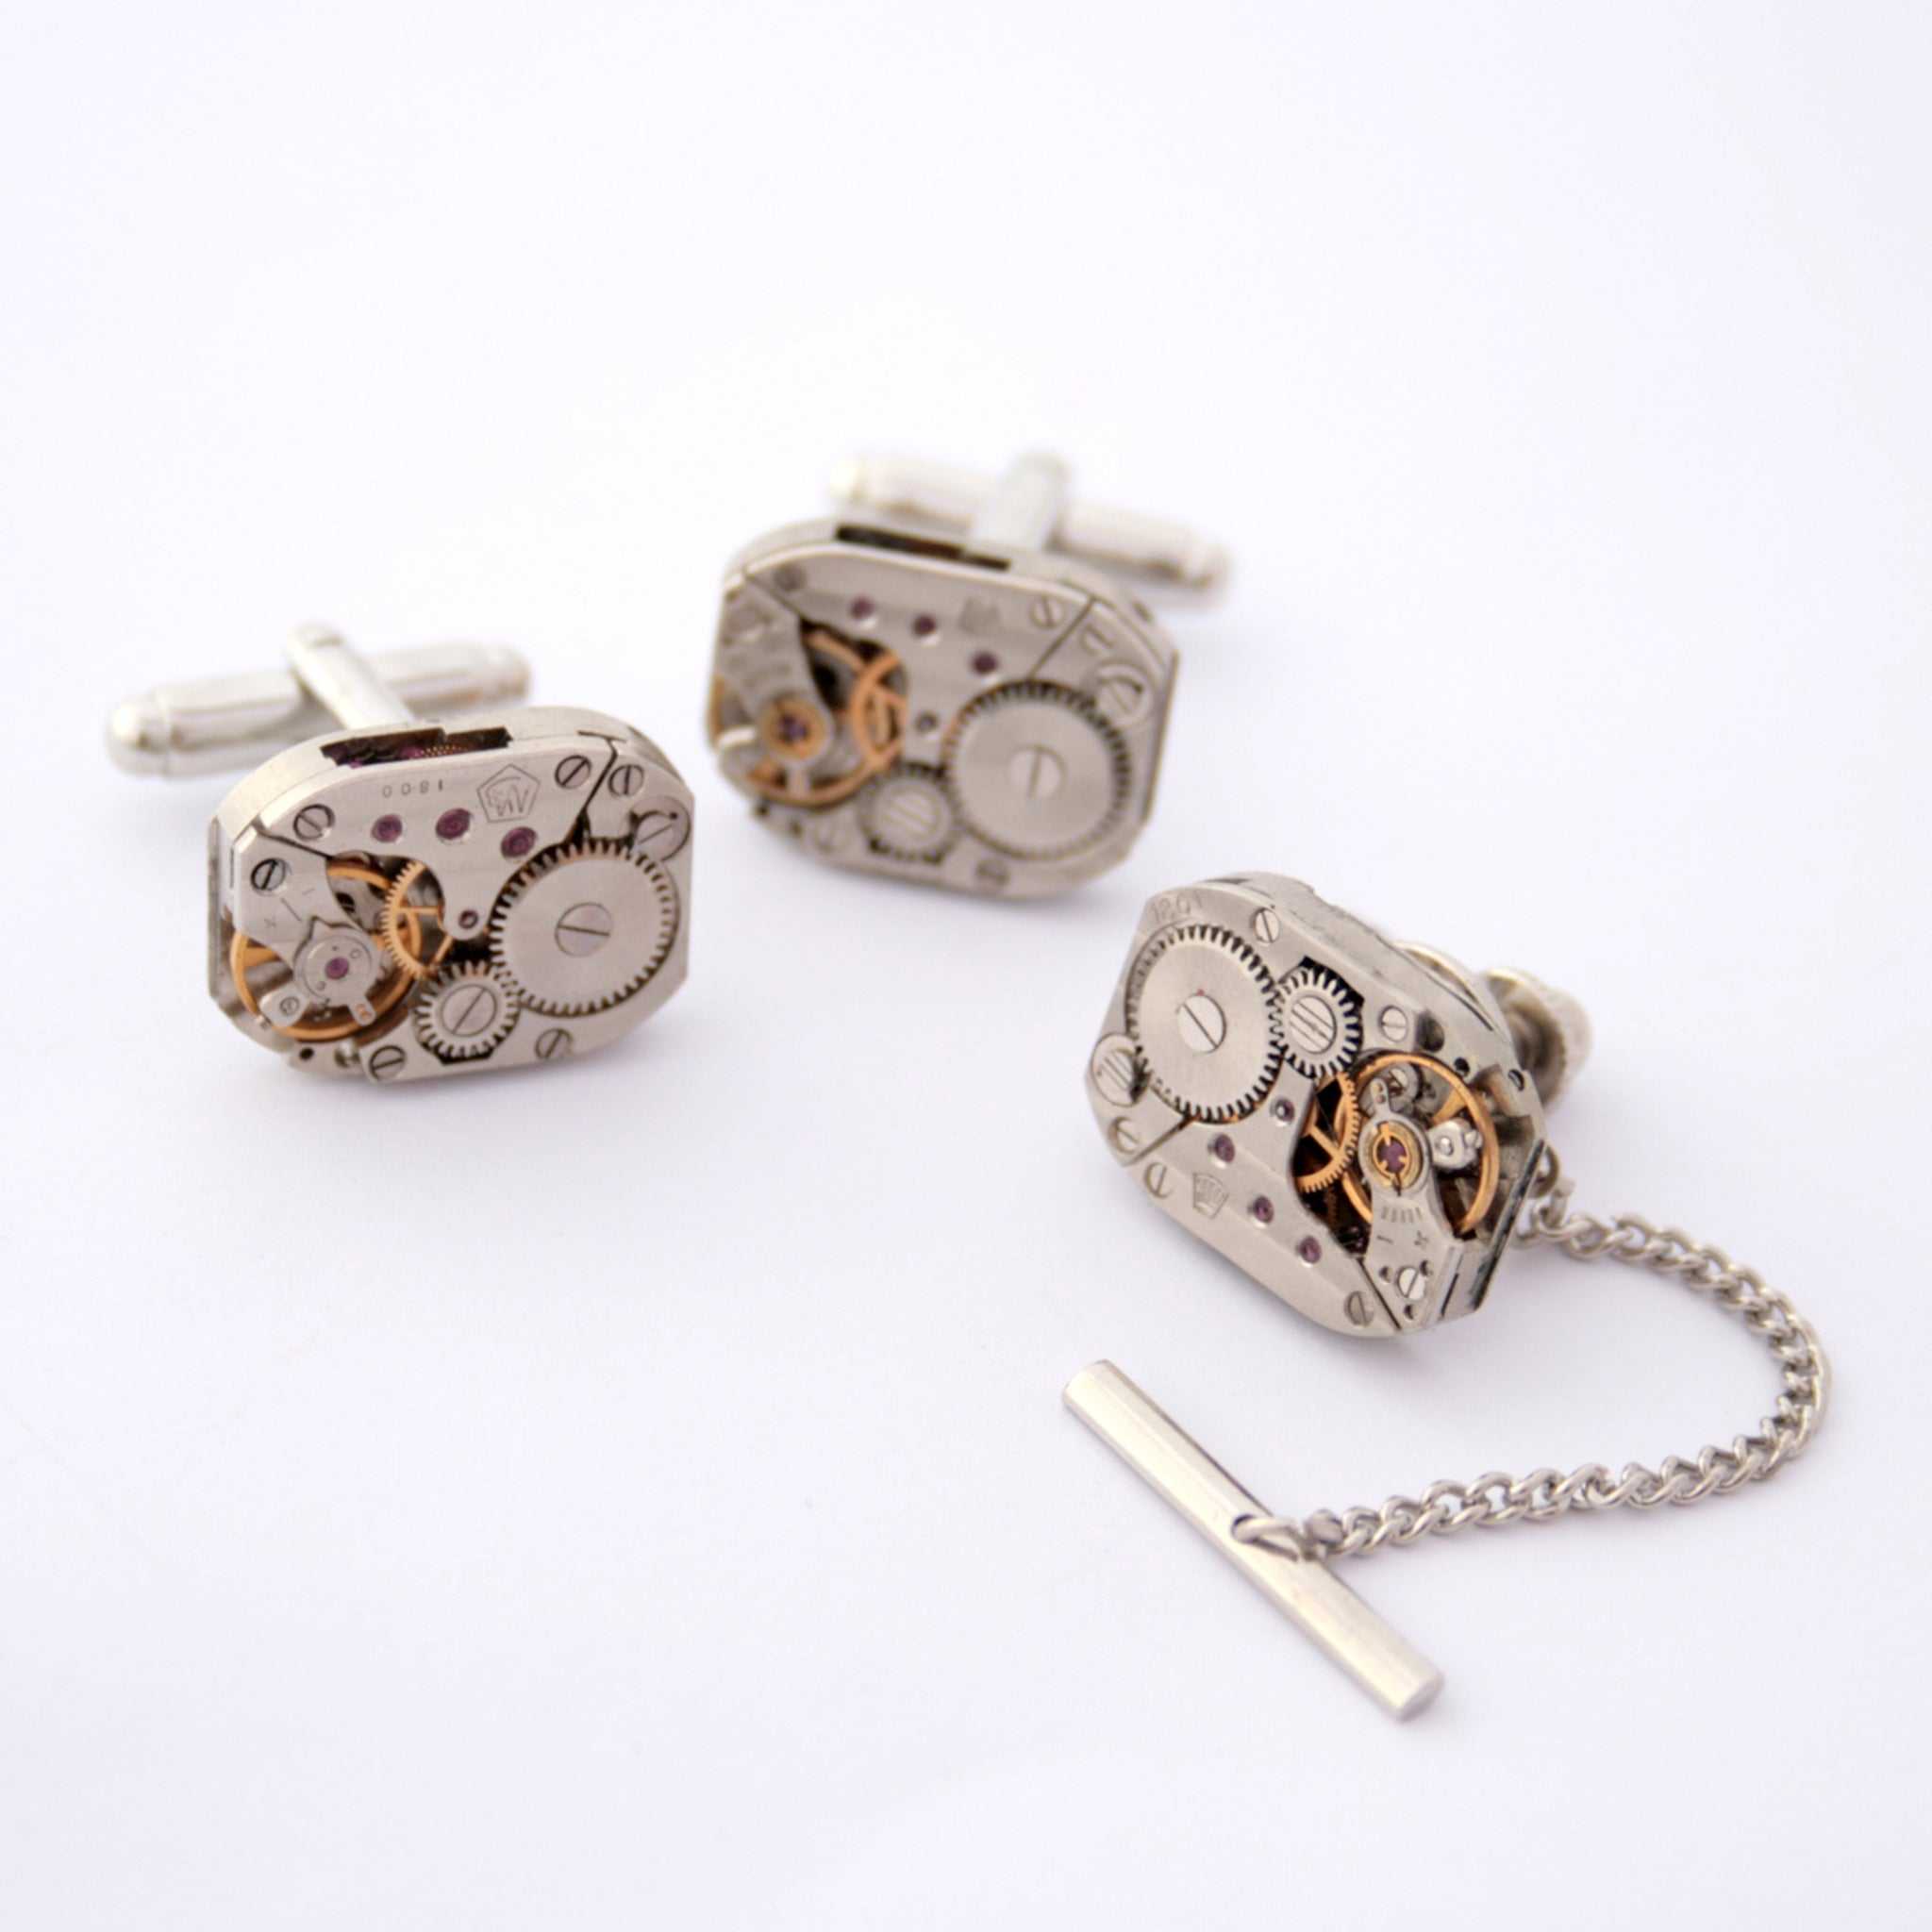 Steampunk Tie Tack and Cufflinks Set made of watch movements